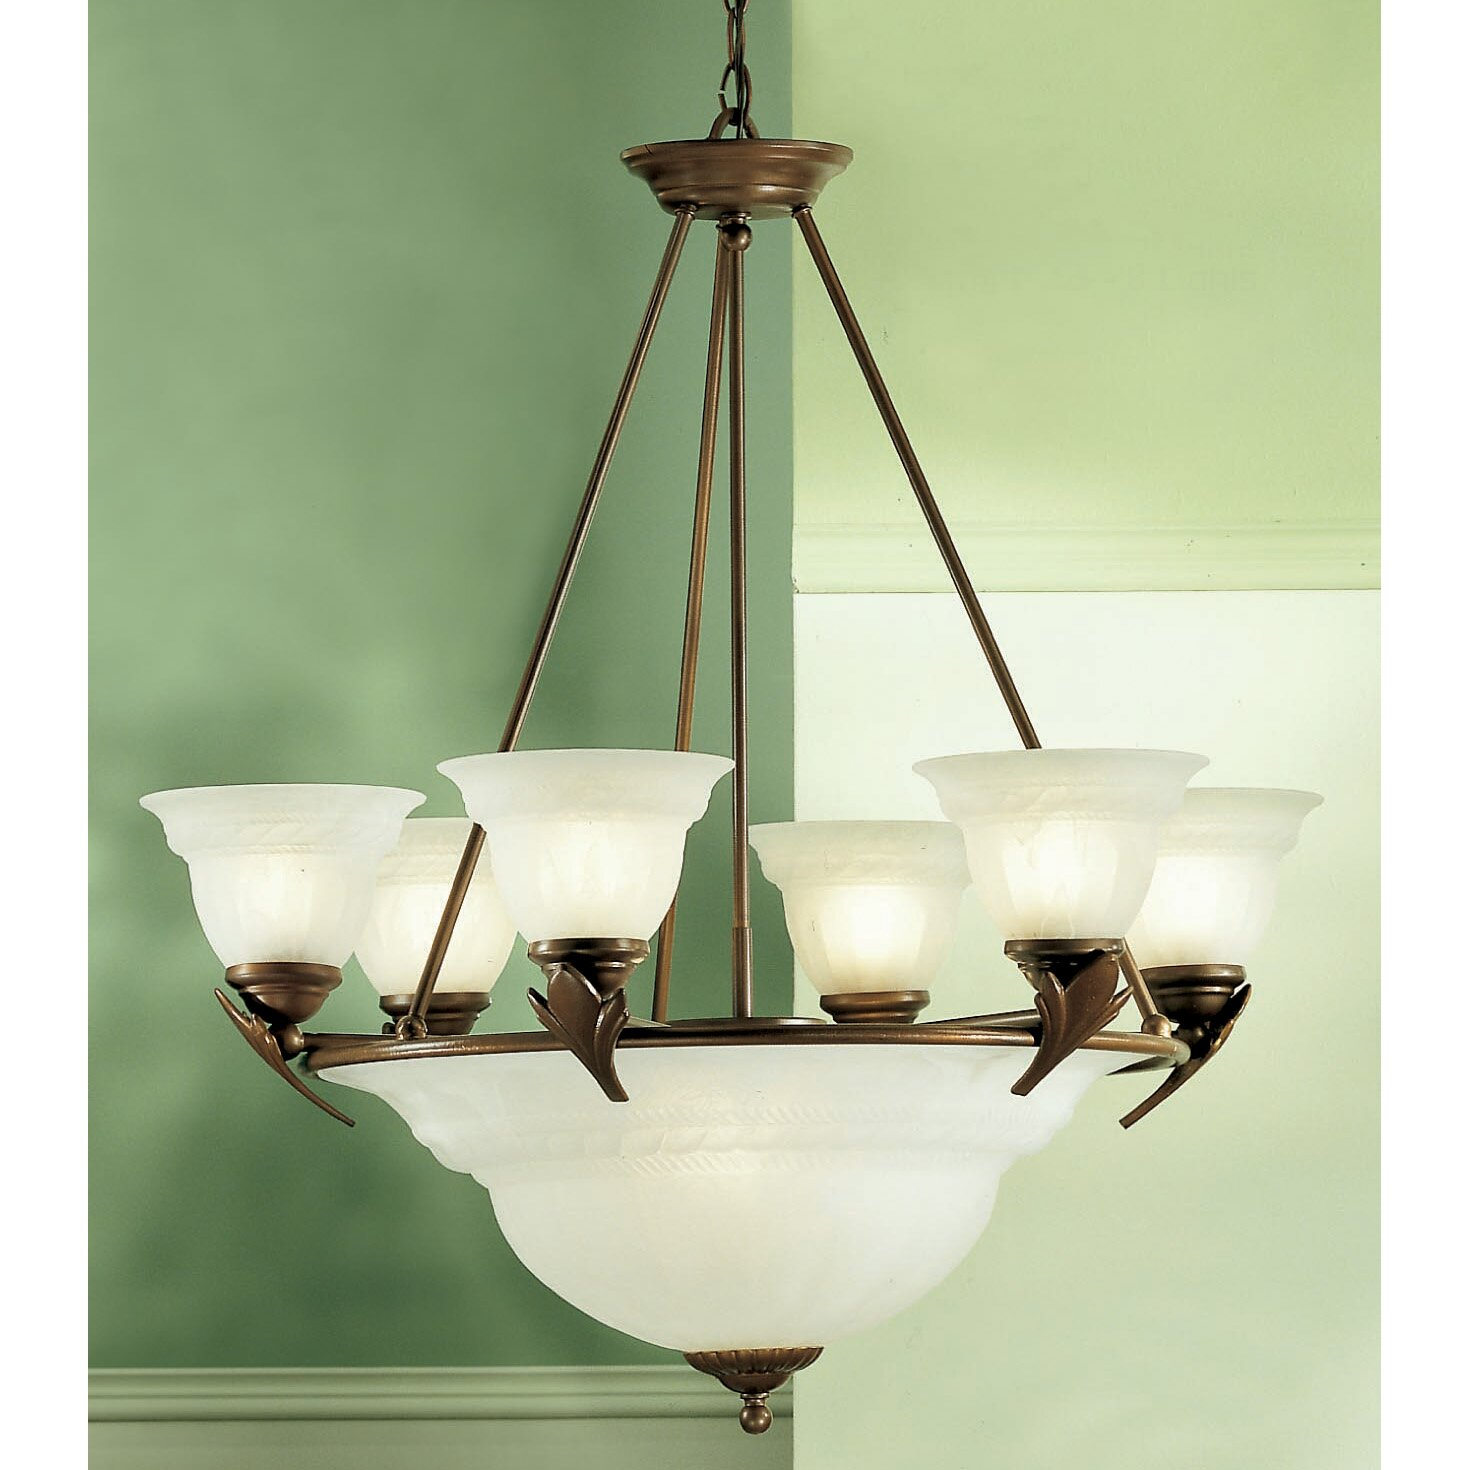 Wayfair Chandelier: Classic Lighting Roma 9 Light Chandelier